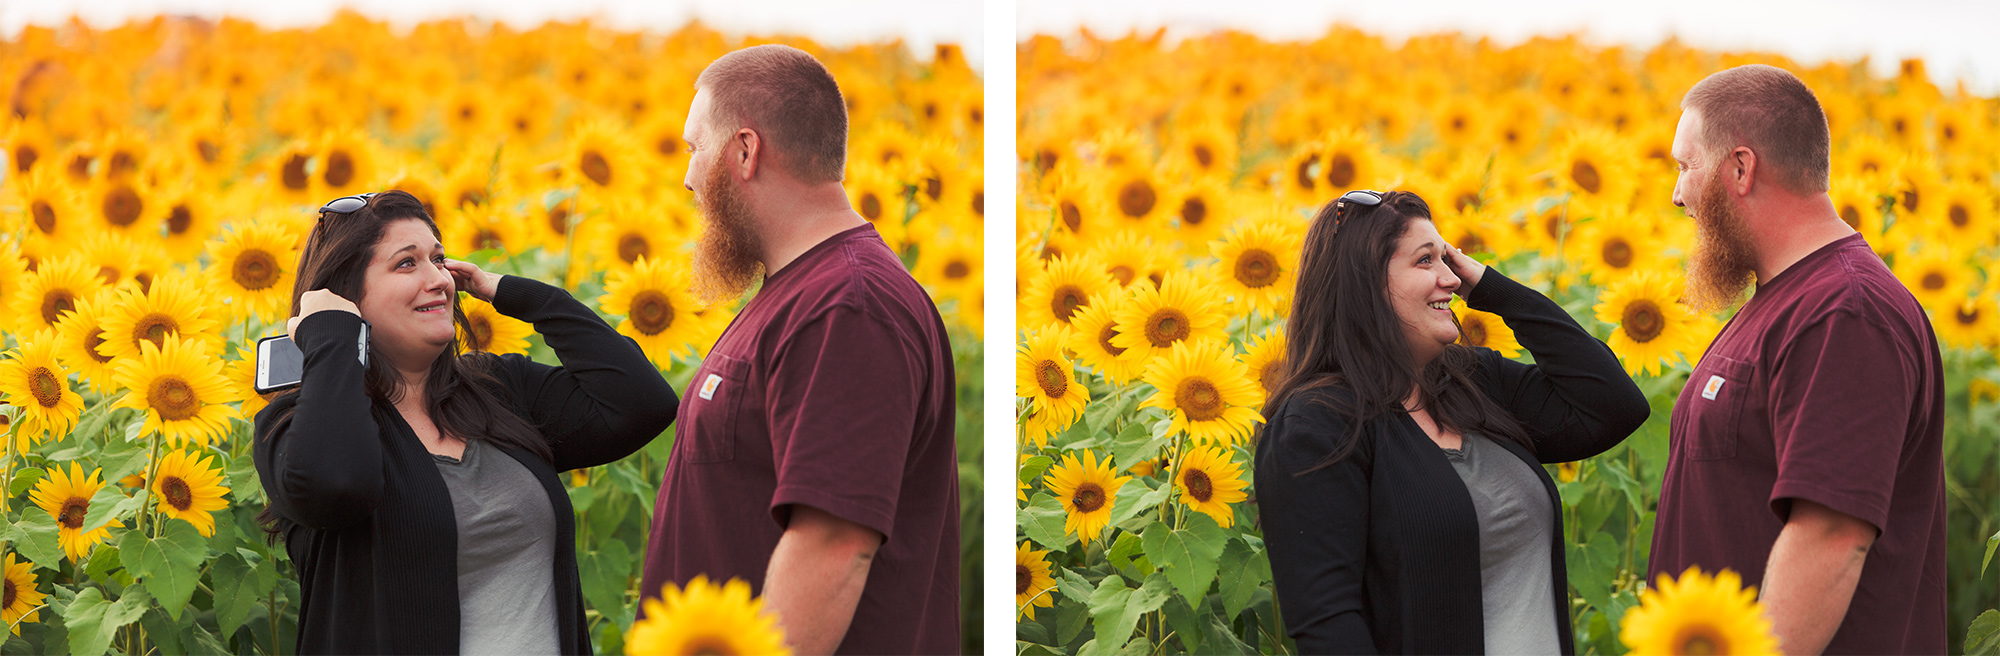 colby-farm-sunflower-engagement-stephen-grant-photography-027.jpg